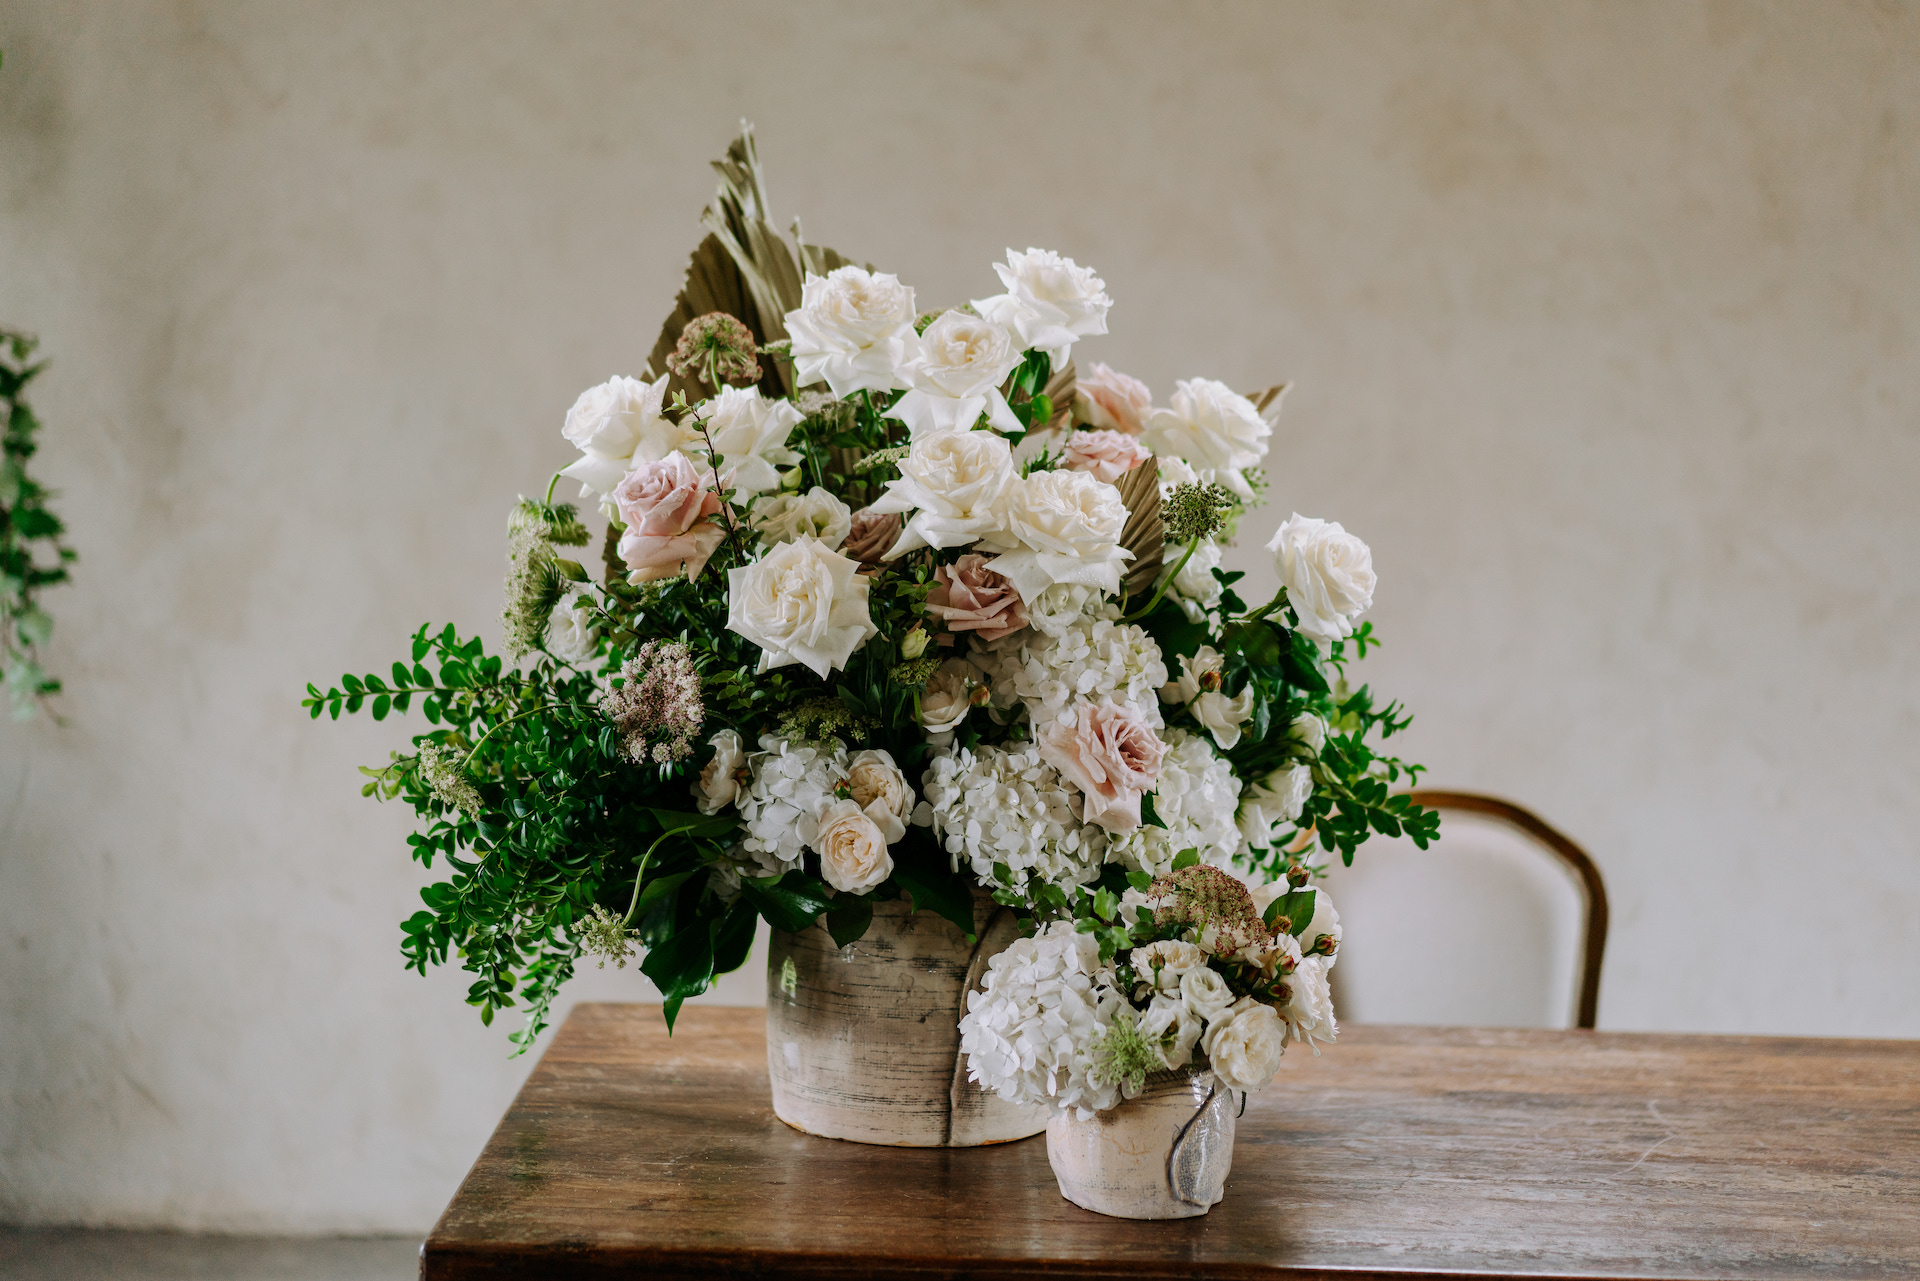 Foam free arrangements for a white and green wedding at Stones of the Yarra Valley.